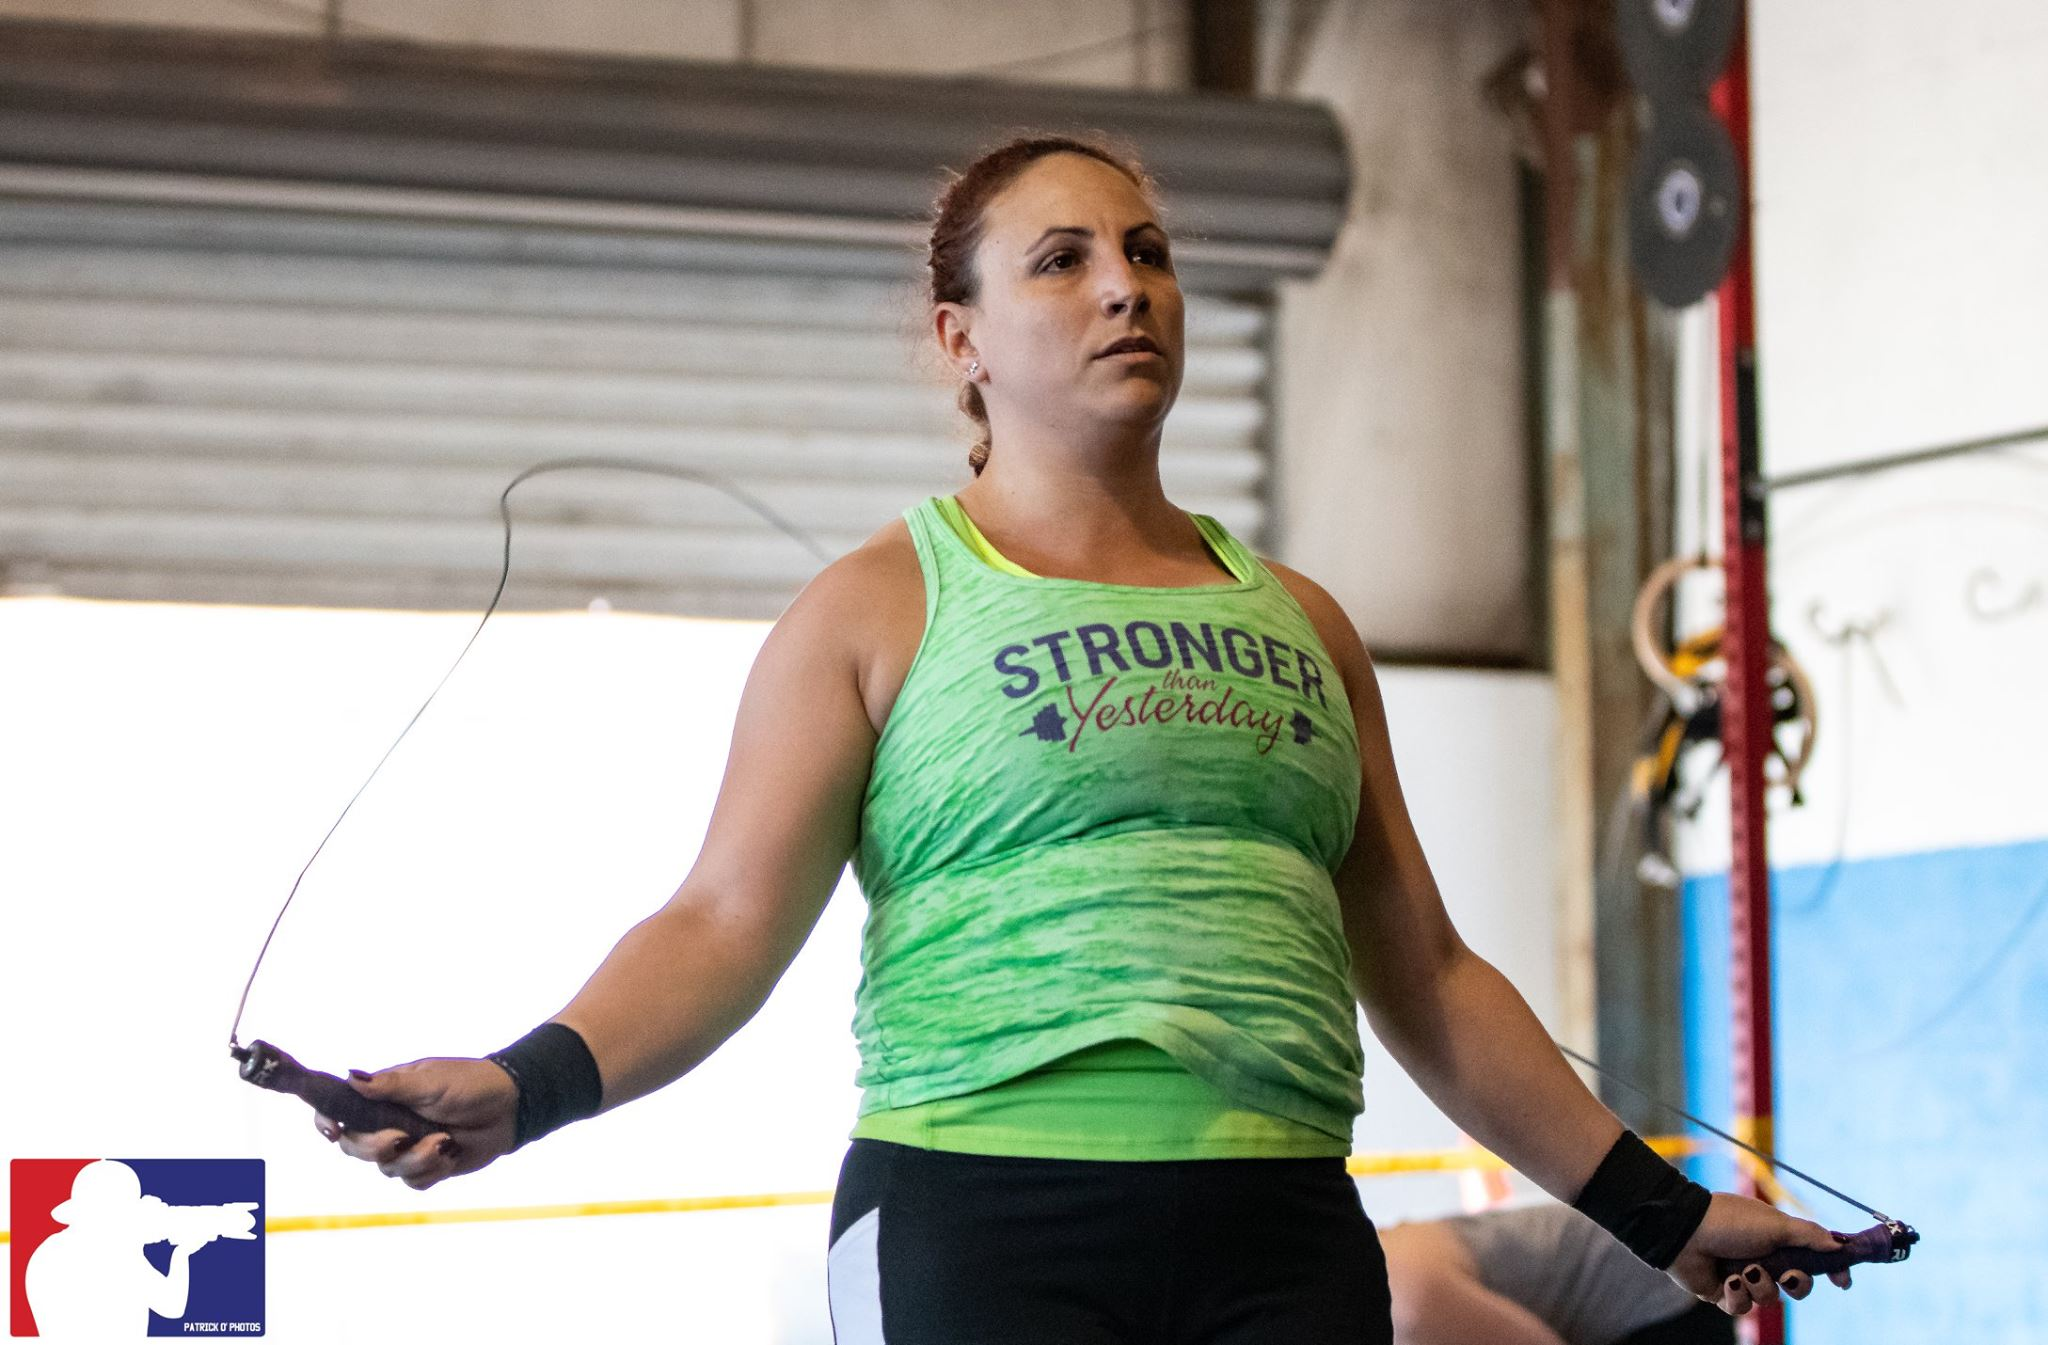 Jessica Sulzer  Coach CrossFit Level 1 Trainer  Beginners Course Coach  CrossFit Kids Coach